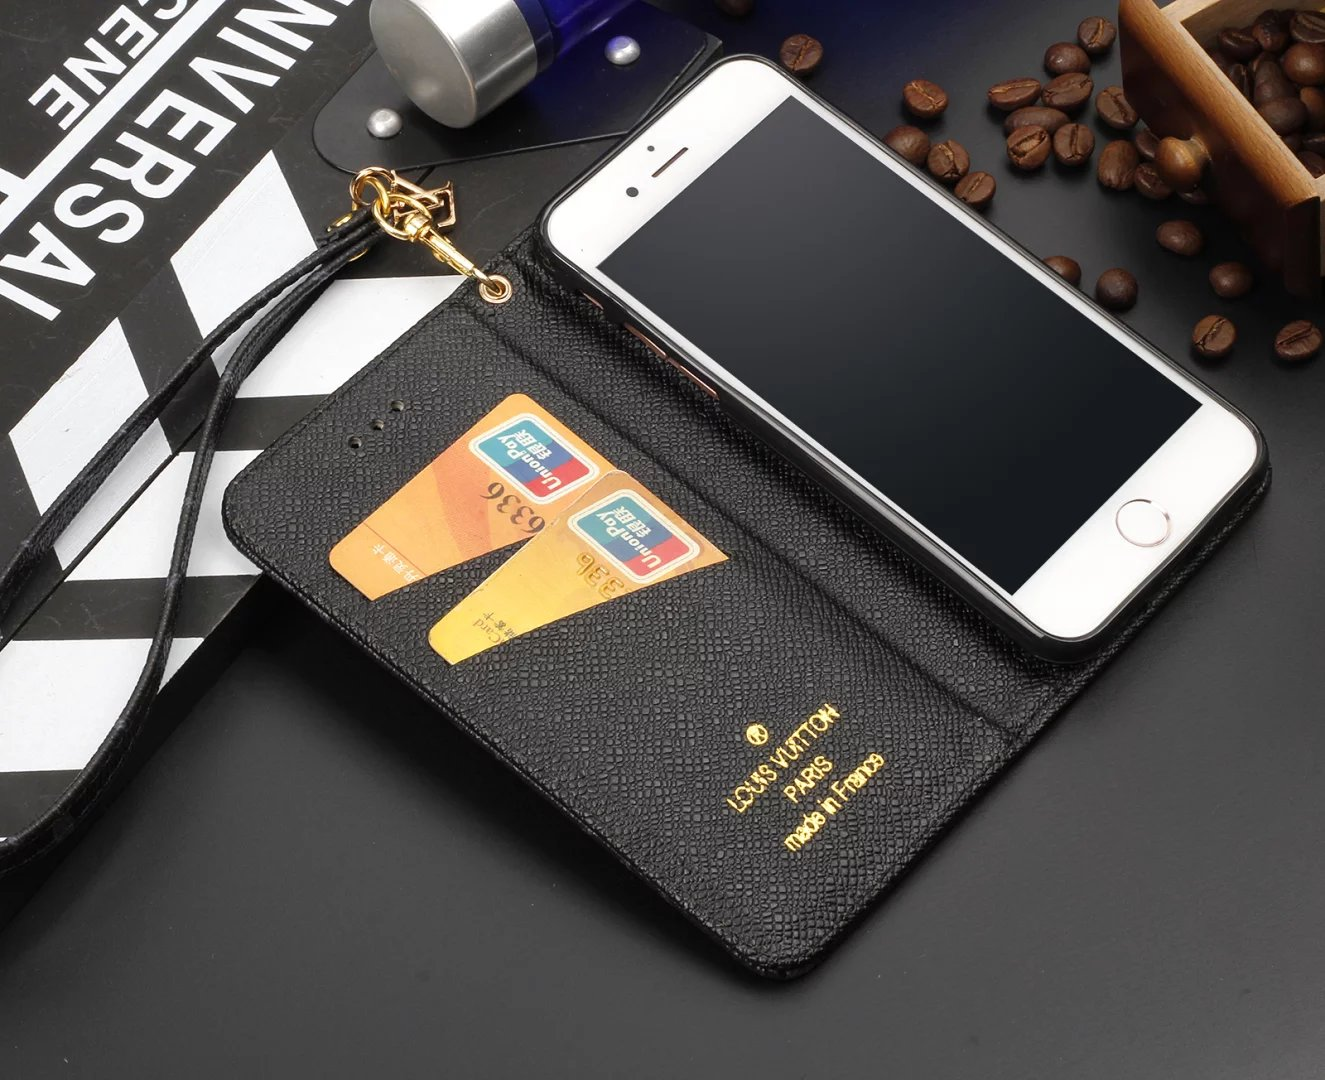 cool phone cases iphone 6s online iphone 6s cover fashion iphone6s case life case iphone shell cell phone covers cheap iphone 6s cases best iphone leather case iphone 6s video apple